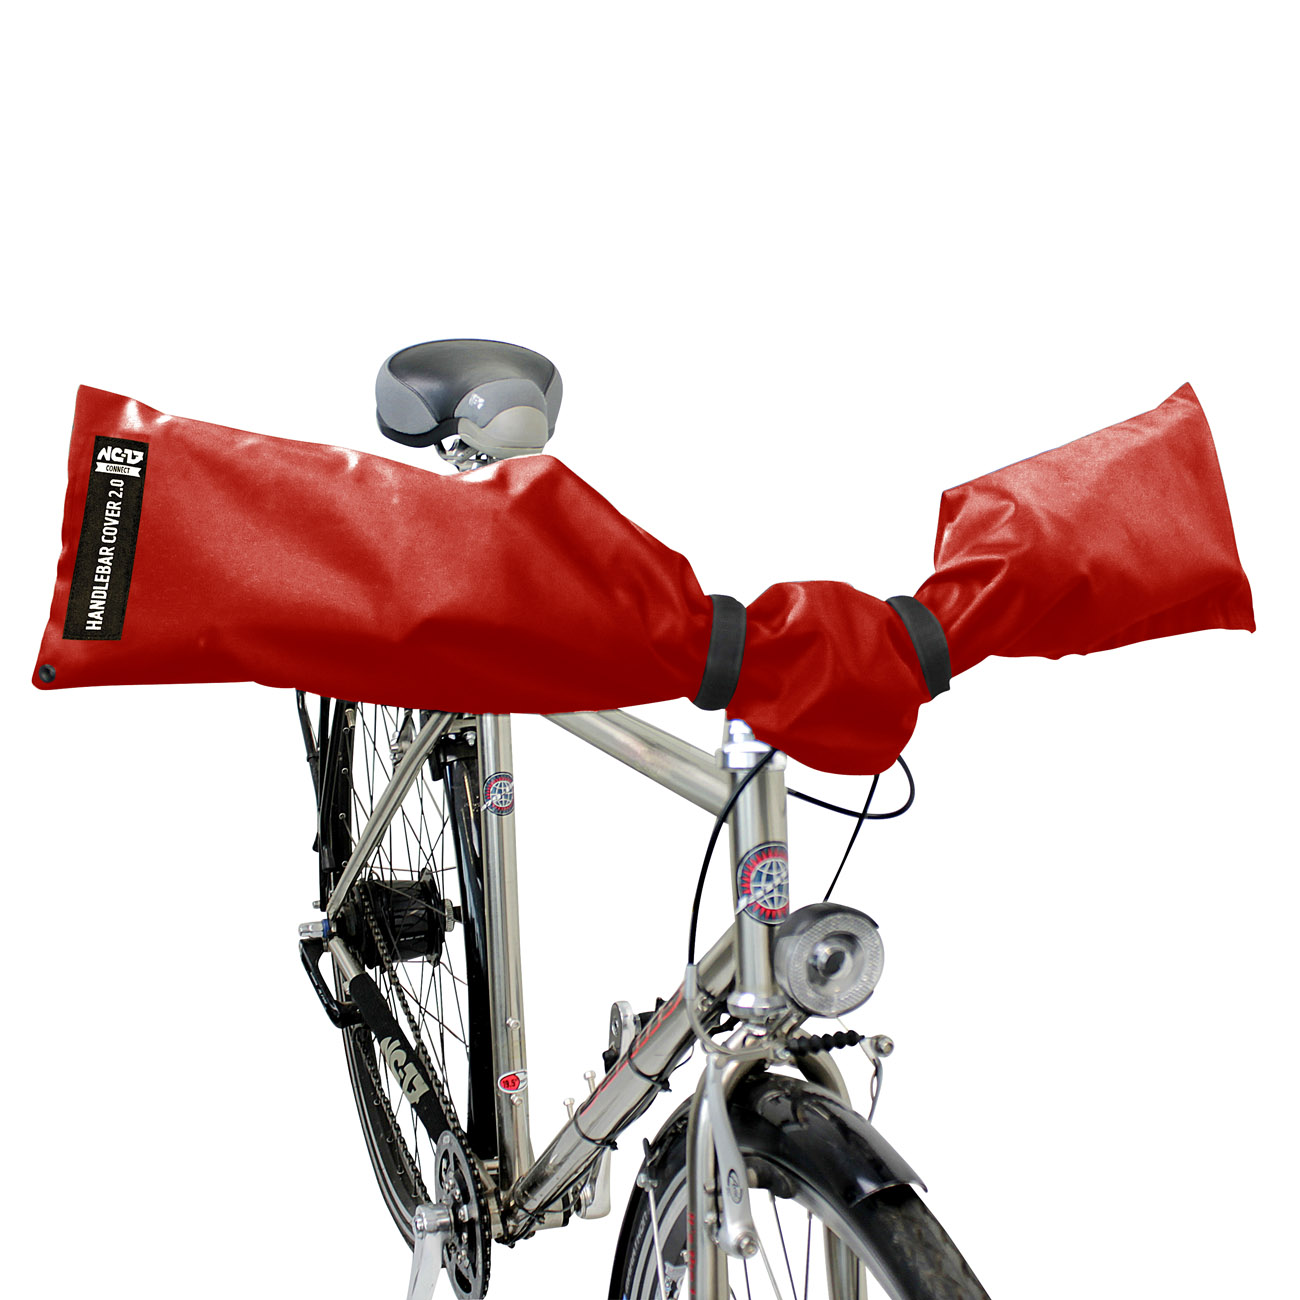 NC-17 Connect Handlebar Cover 2.0<br/>Für Lenker, one size fits all, rot<br/>&nbsp;&nbsp;